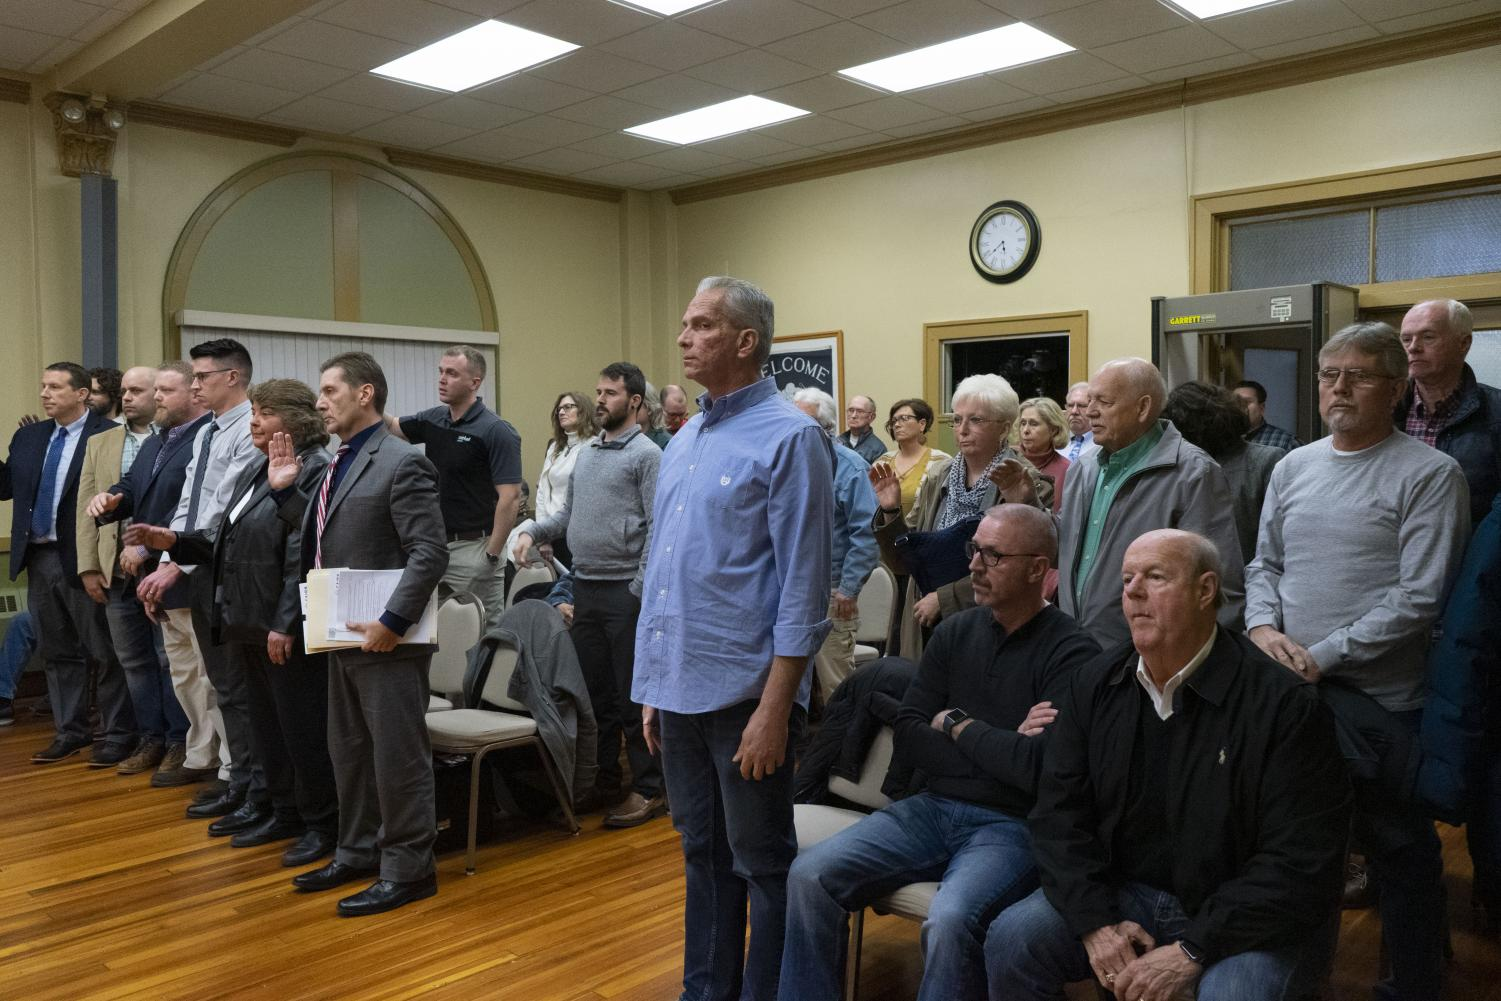 People in the audience of the Zanesville Board of Zoning Appeals who wished to speak during the meeting stand to take an oath.